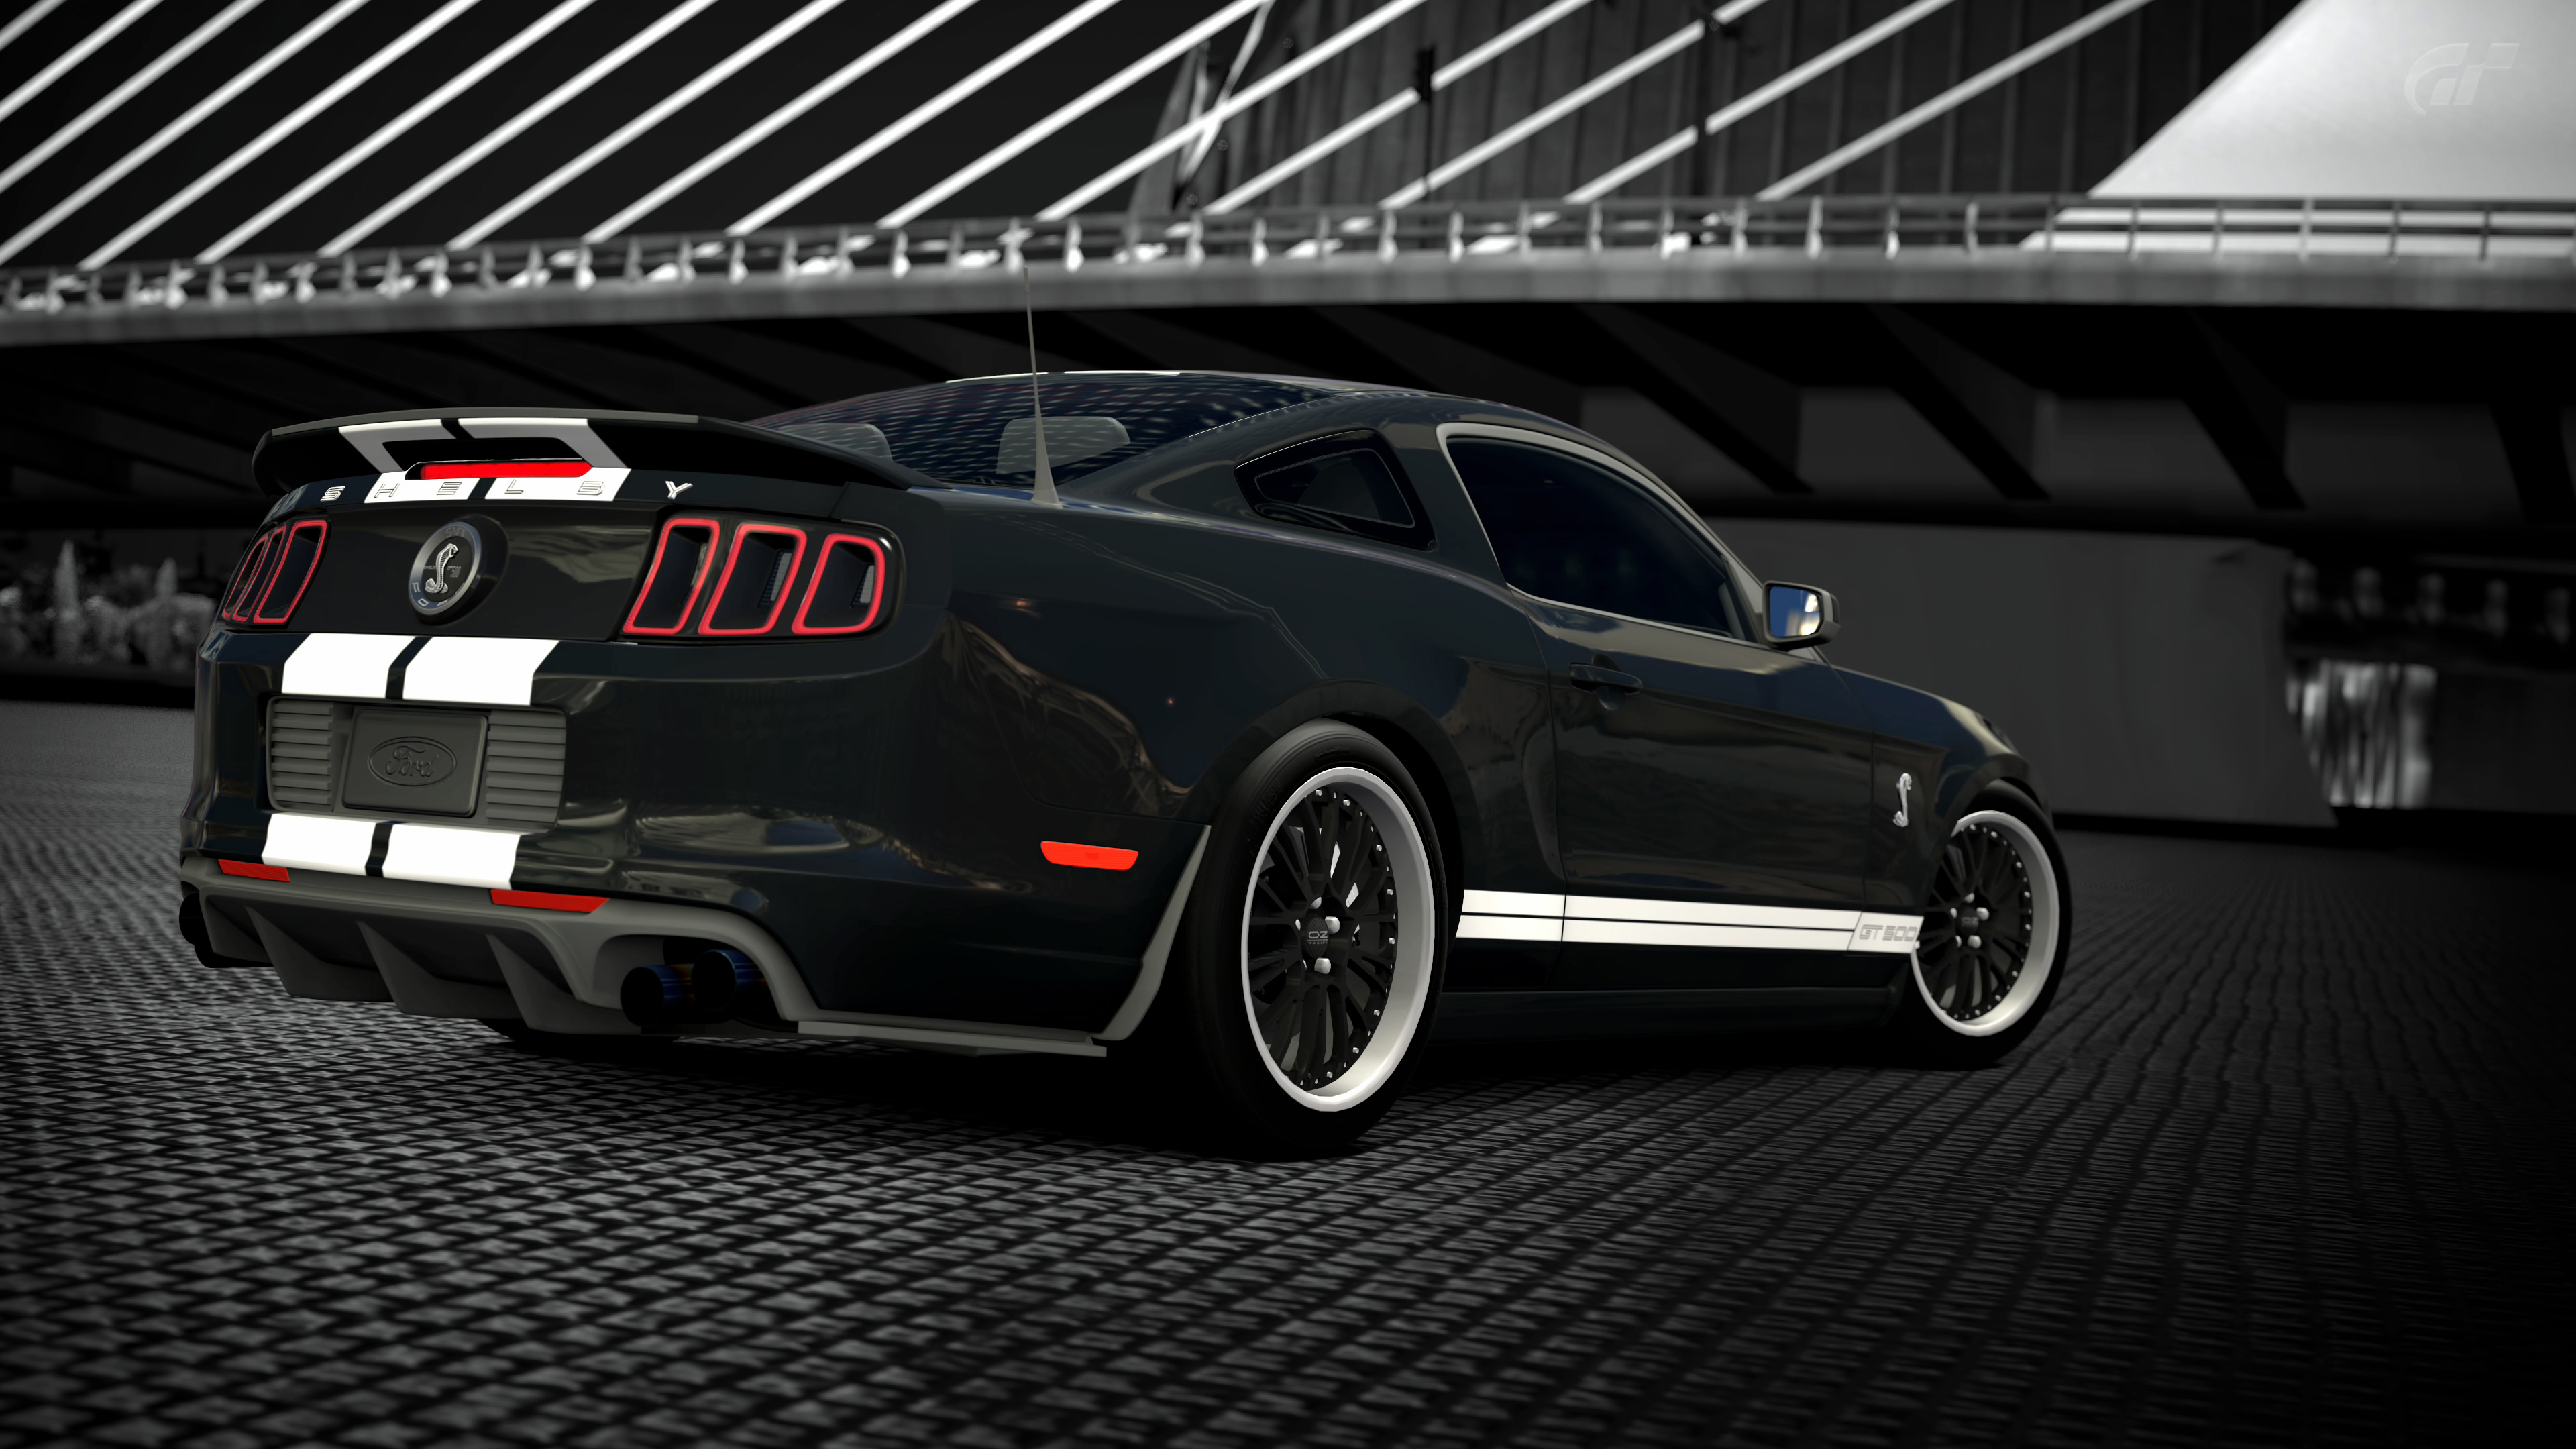 2013 ford mustang shelby gt500 gran turismo 6 by vertualissimo on deviantart. Black Bedroom Furniture Sets. Home Design Ideas